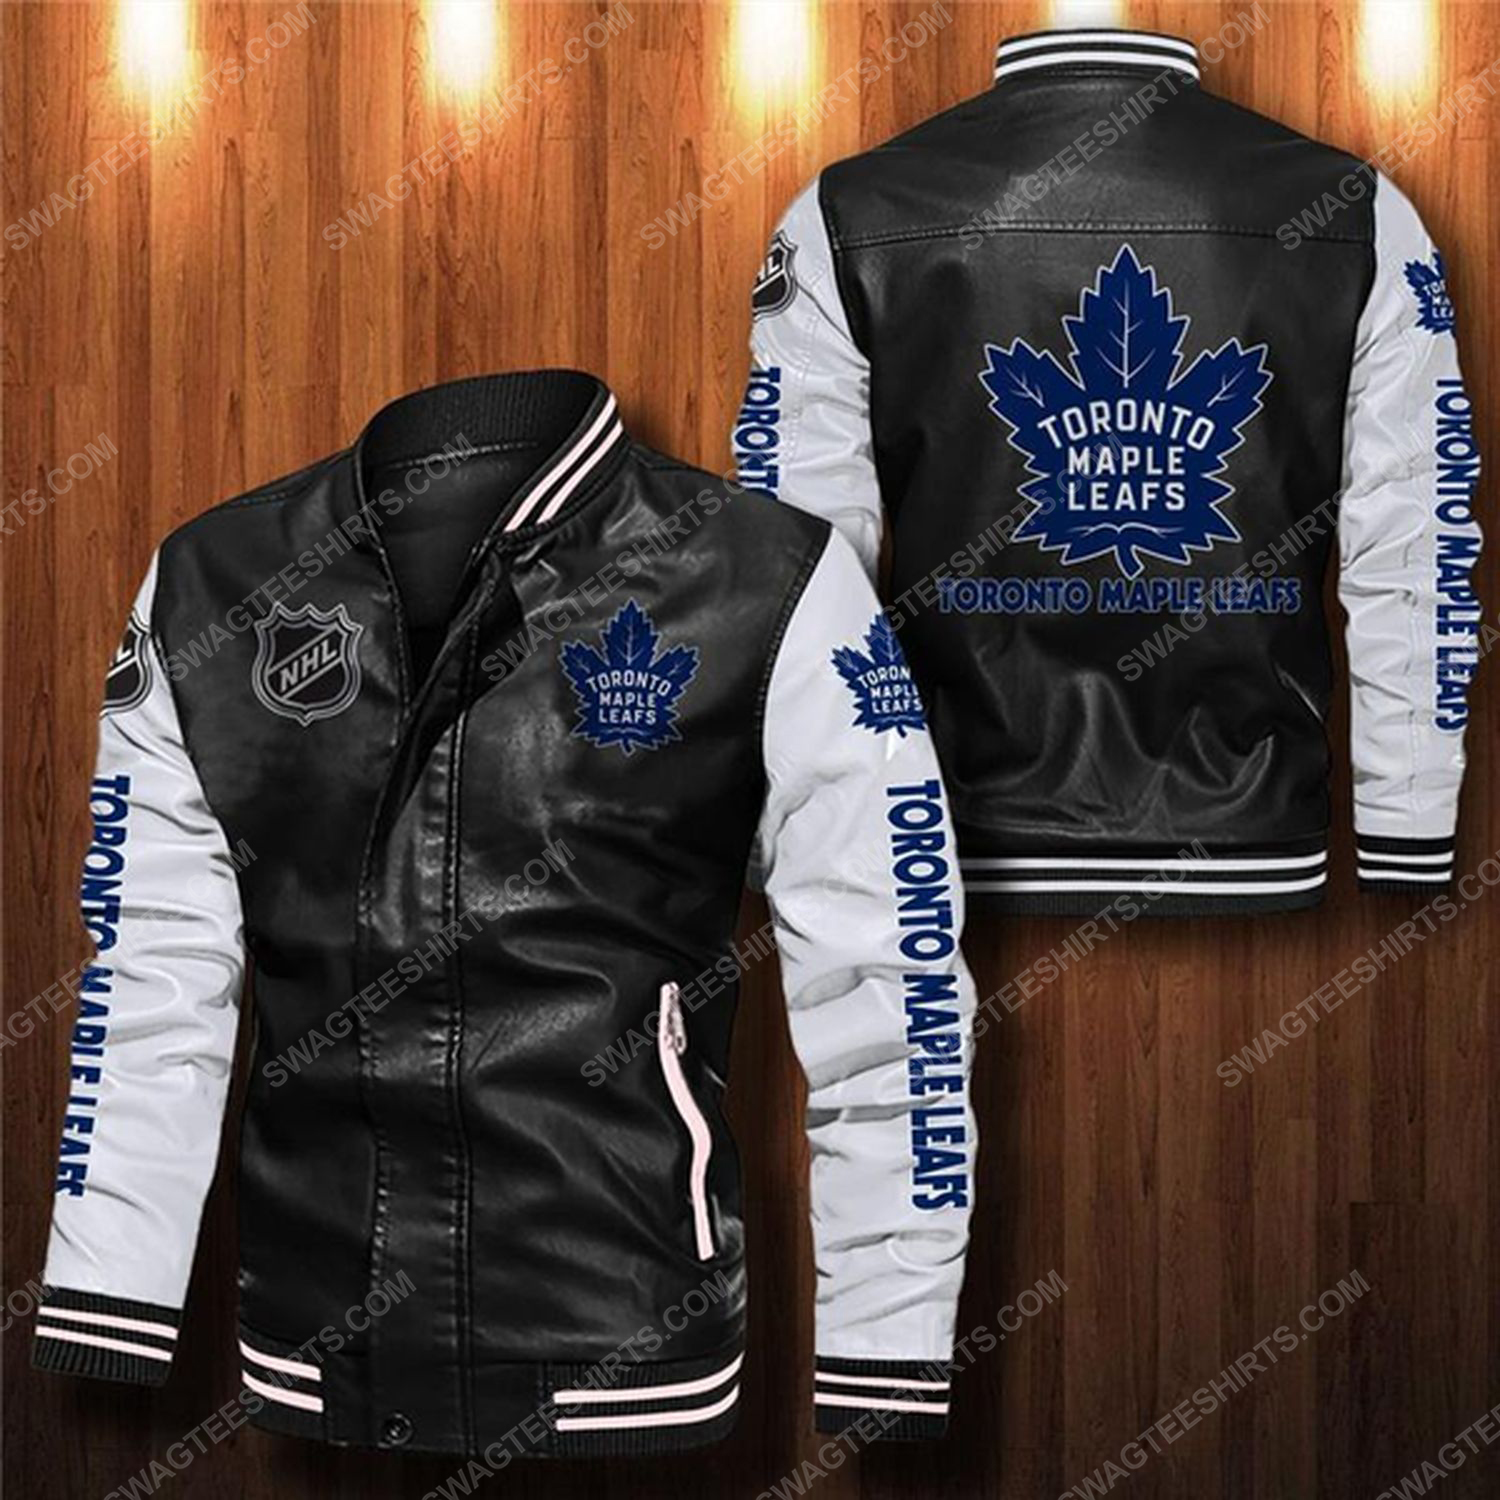 Toronto maple leafs all over print leather bomber jacket - white